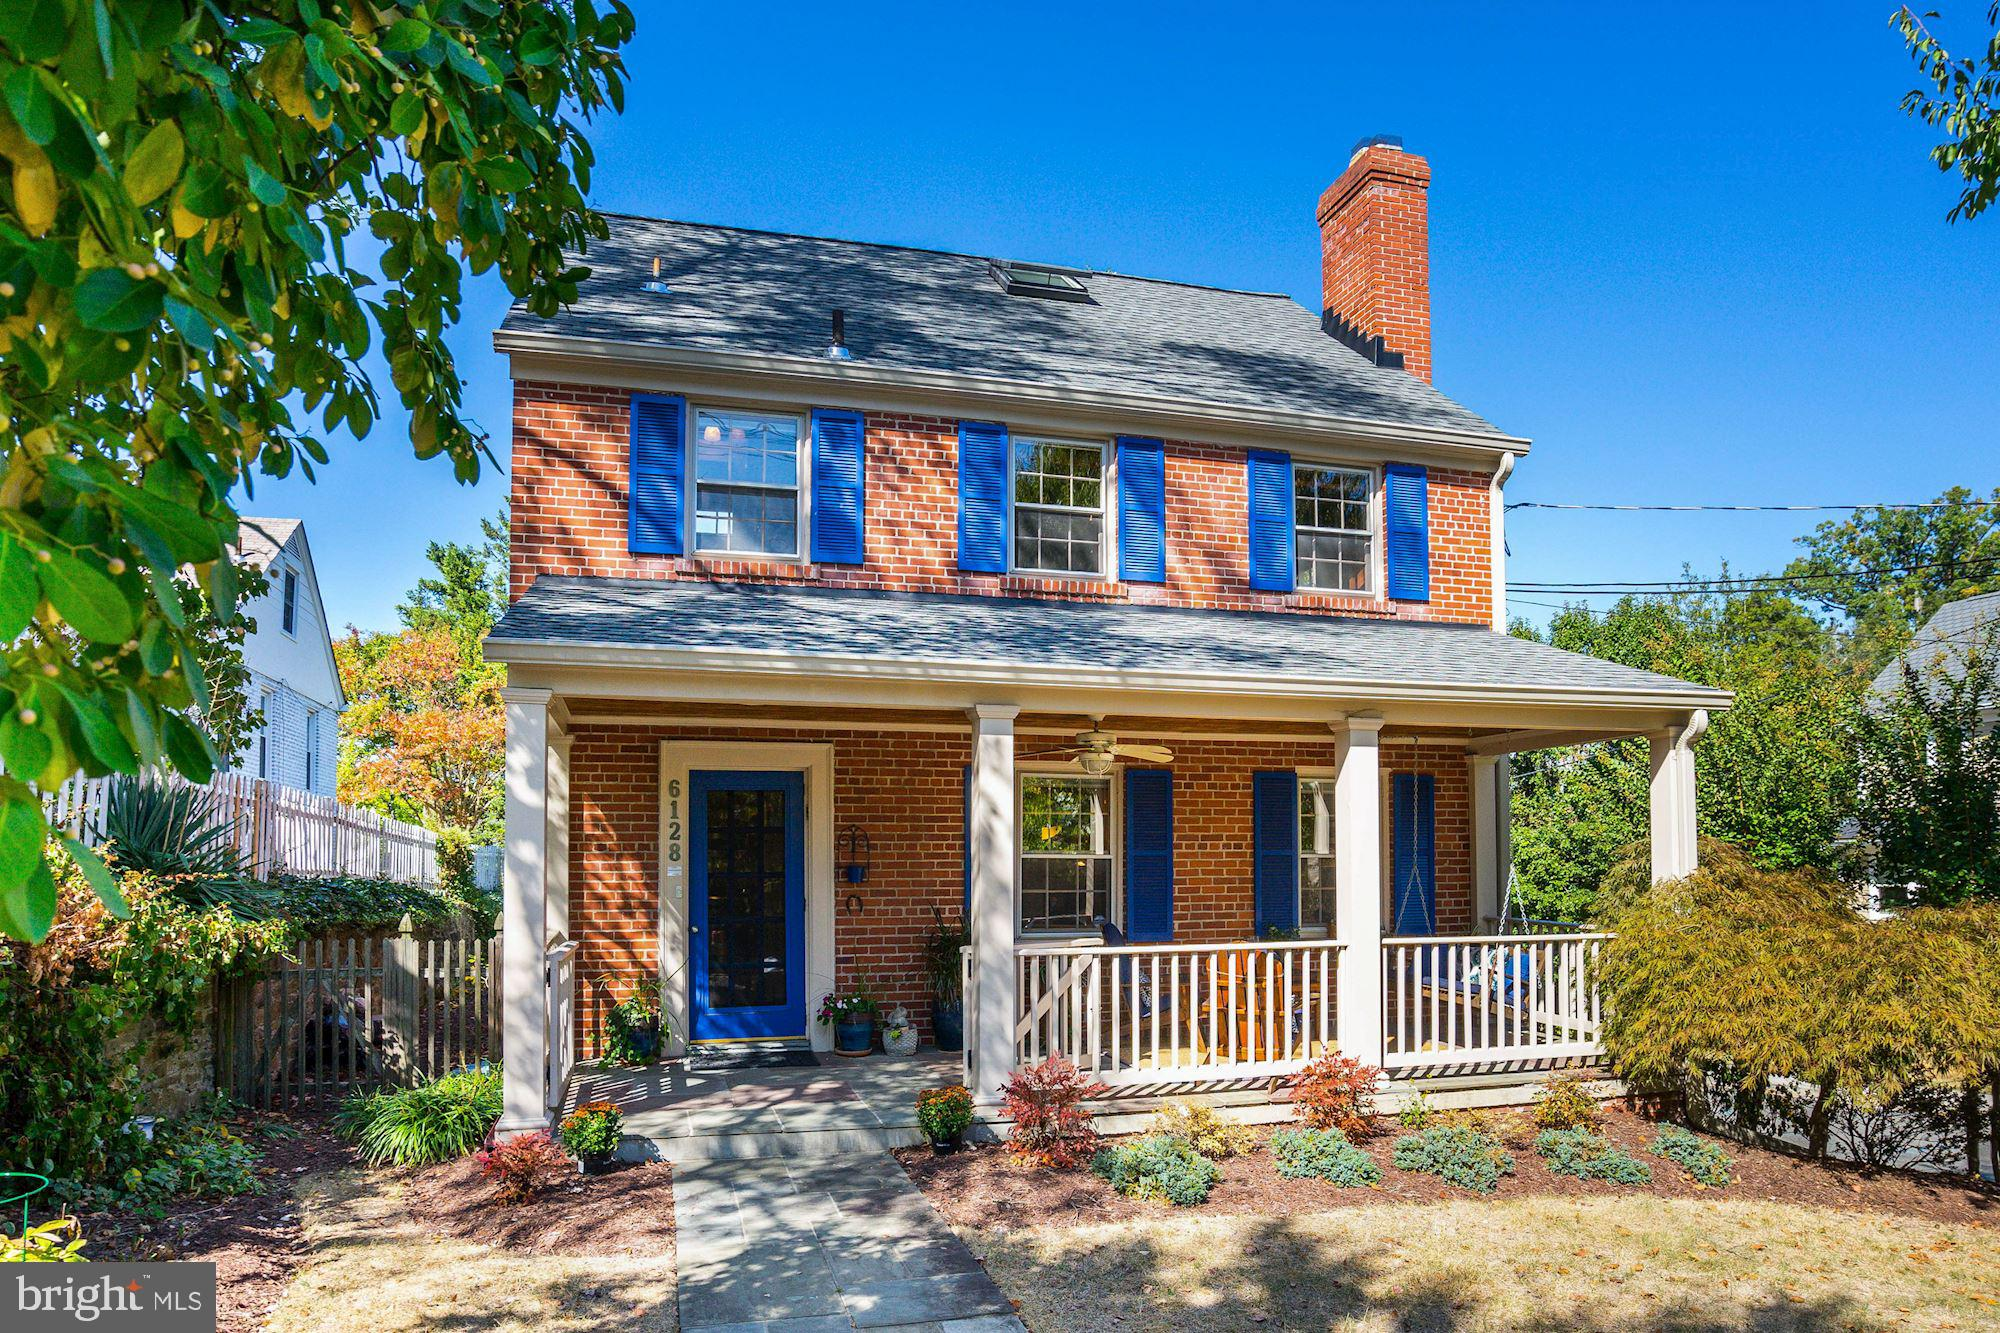 Welcome home to this beautifully renovated, sun-filled brick Colonial home in the heart of Barnaby W